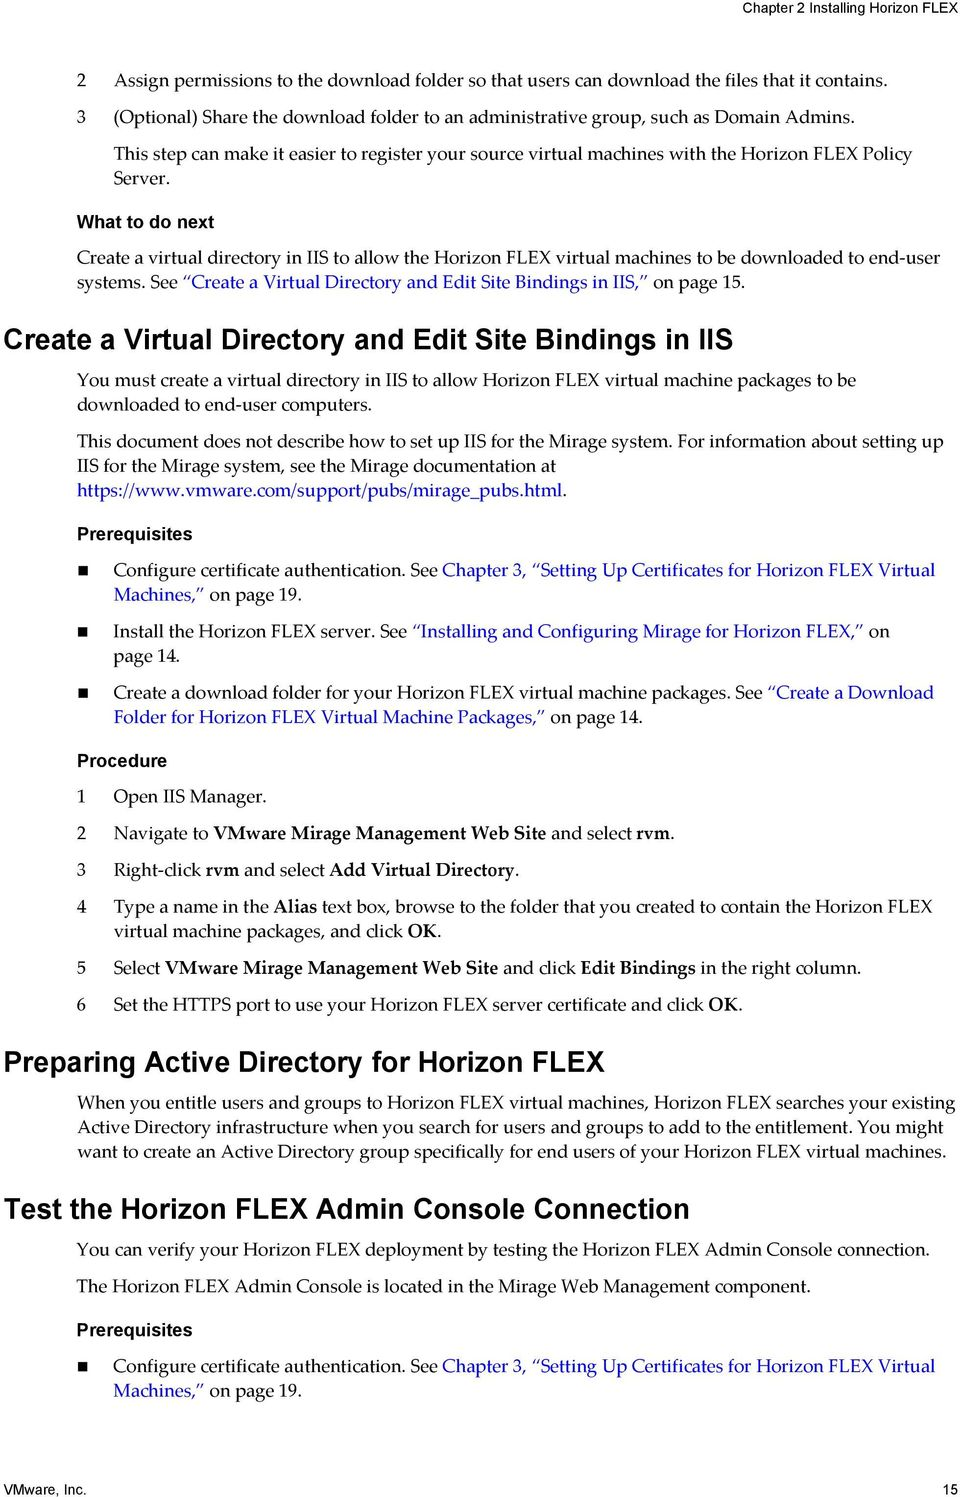 Wht to do next Crete virtul diretory in IIS to llow the Horizon FLEX virtul mhines to e downloded to end-user systems. See Crete Virtul Diretory nd Edit Site Bindings in IIS, on pge 15.